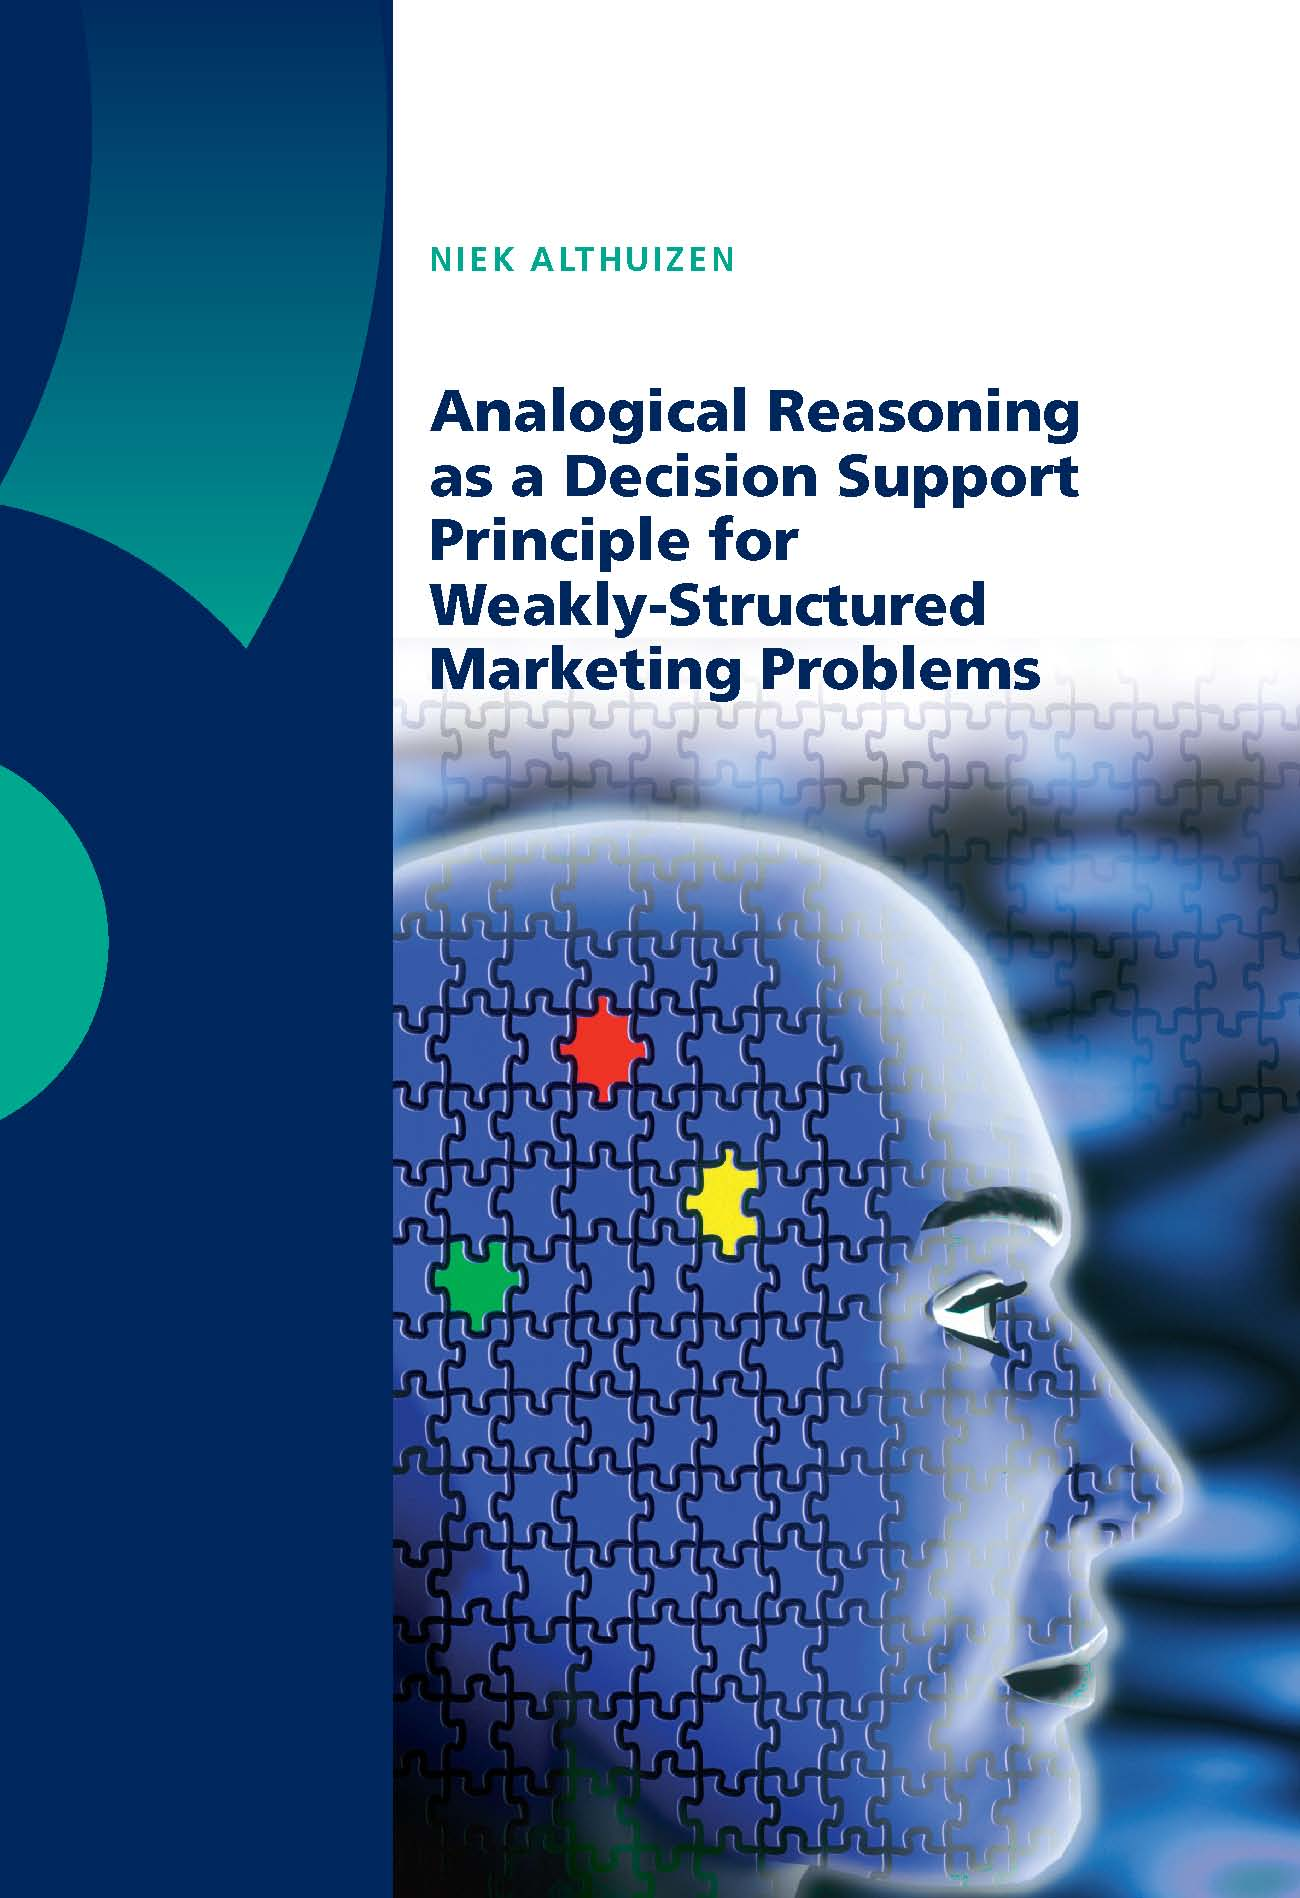 Analogical Reasoning as a Decision Support Principle for Weakly-Structured Marketing Problems